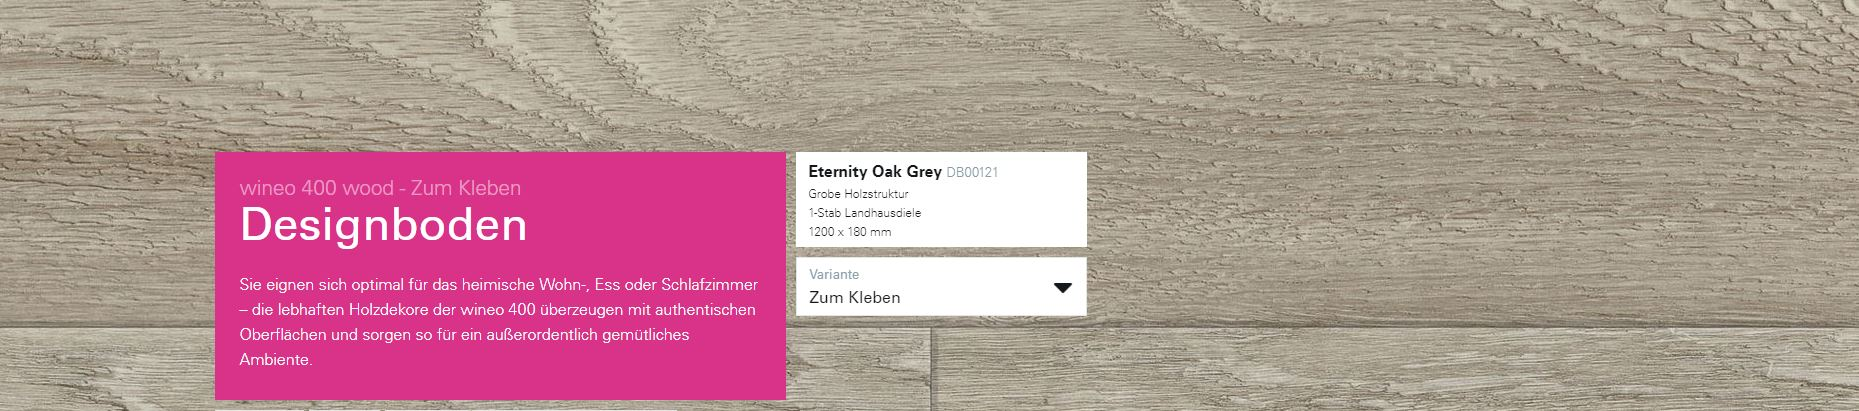 Wineo 400 Eternity Eternity Oak Grey DB00121 @ Boden4You.com Design Bodenbelag günstig und Trsuted Shop sicher kaufen